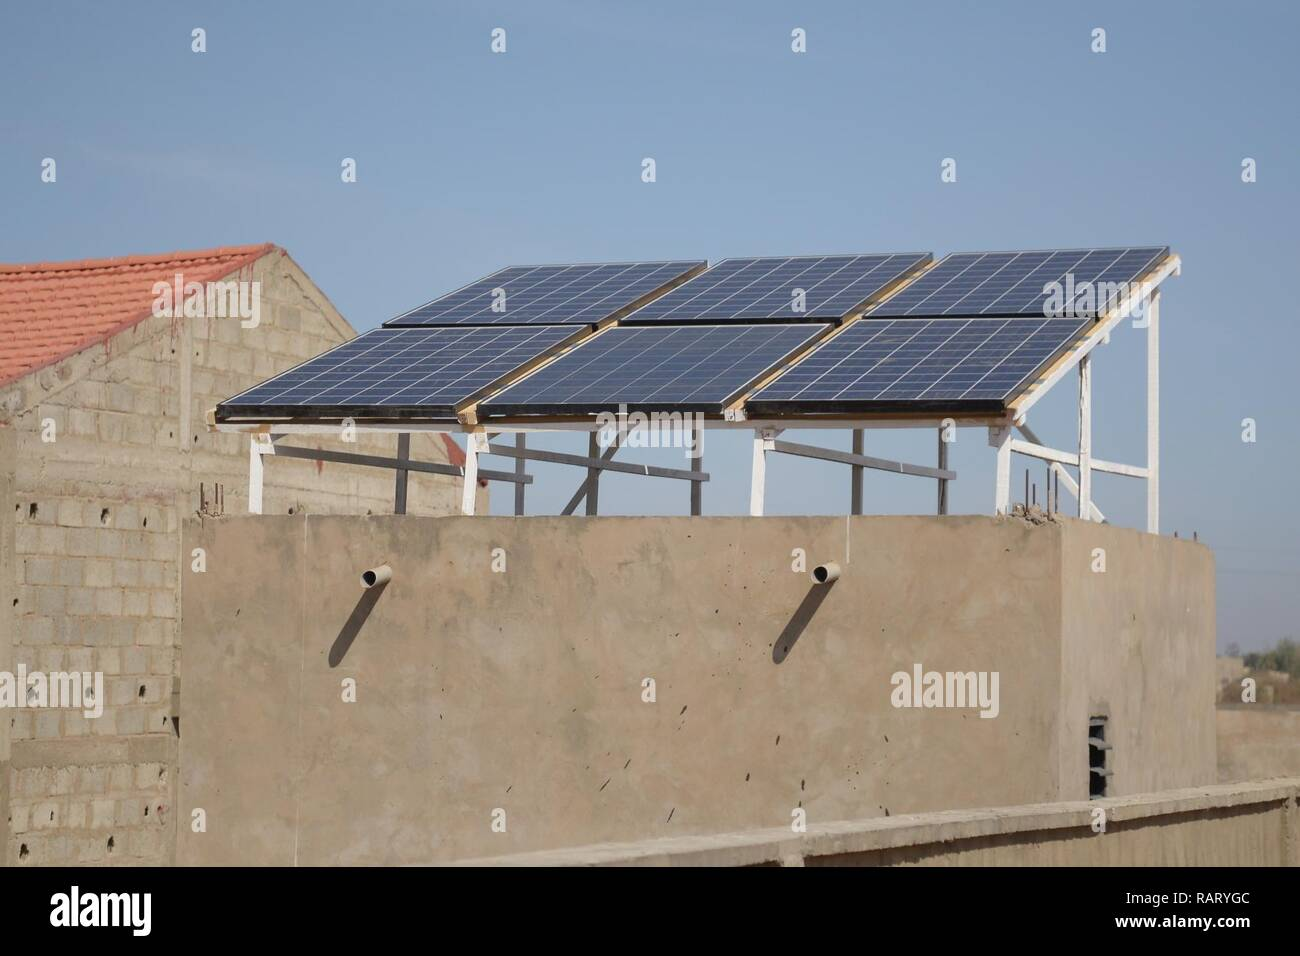 Completed solar panels on a building in the rural city of Mbour in the Republic of Senegal in West Africa. - Stock Image